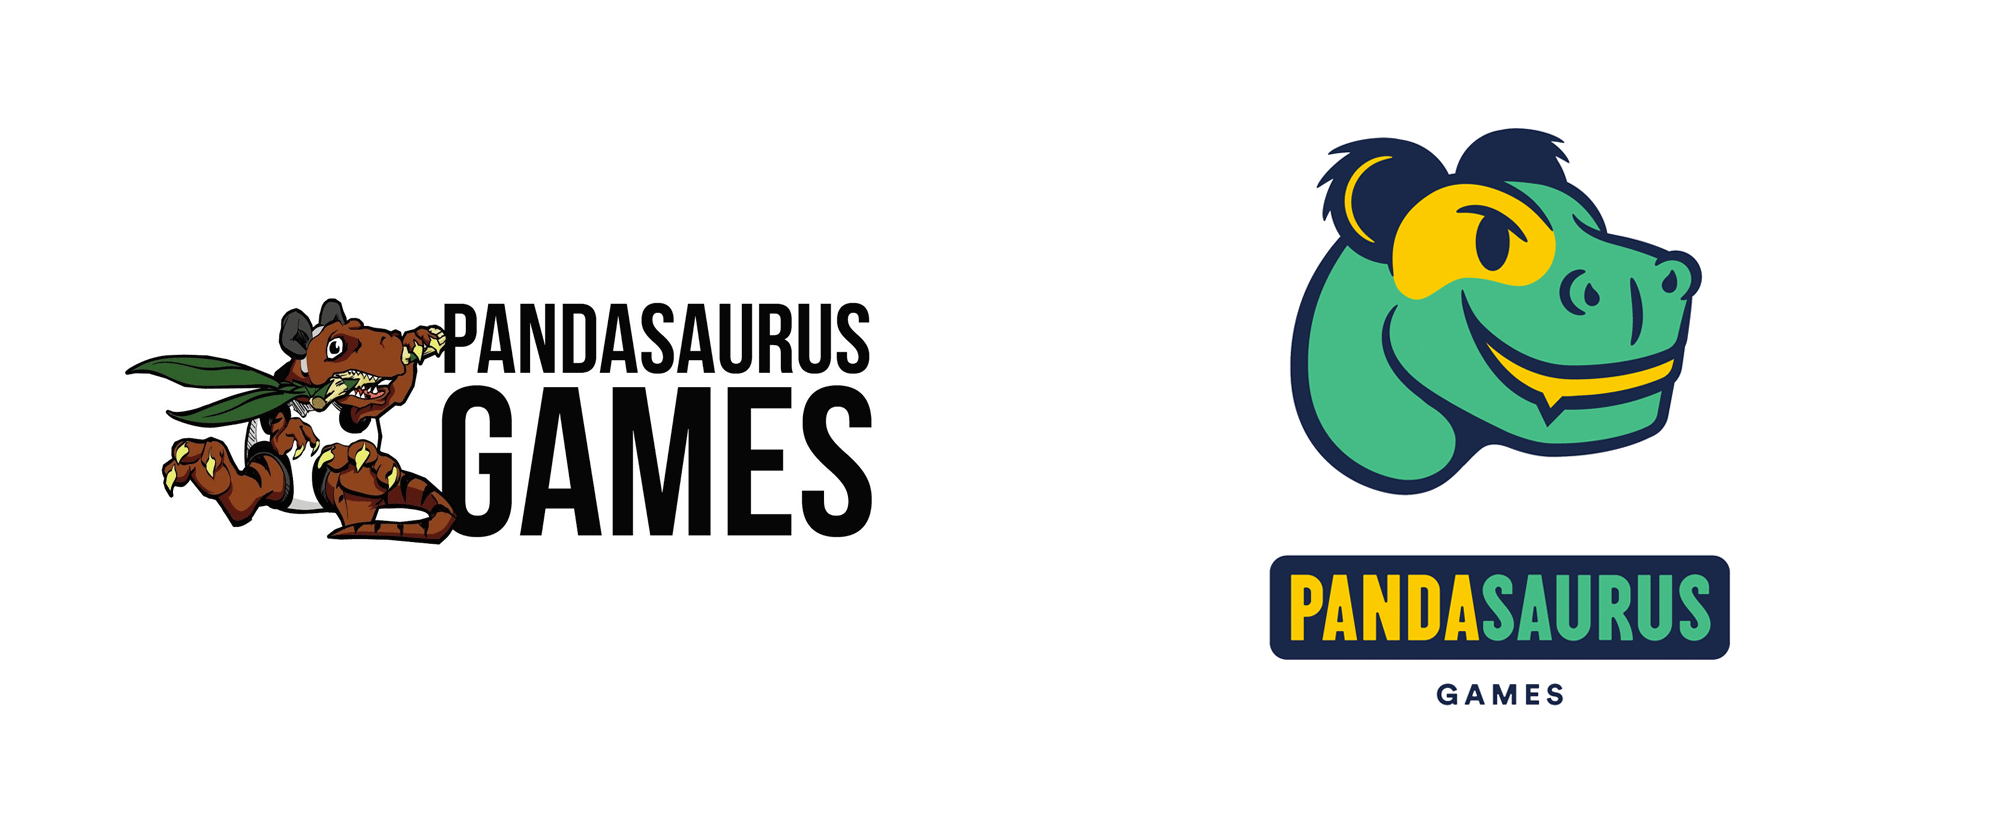 New Logo for Pandasaurus Games by Helms Workshop